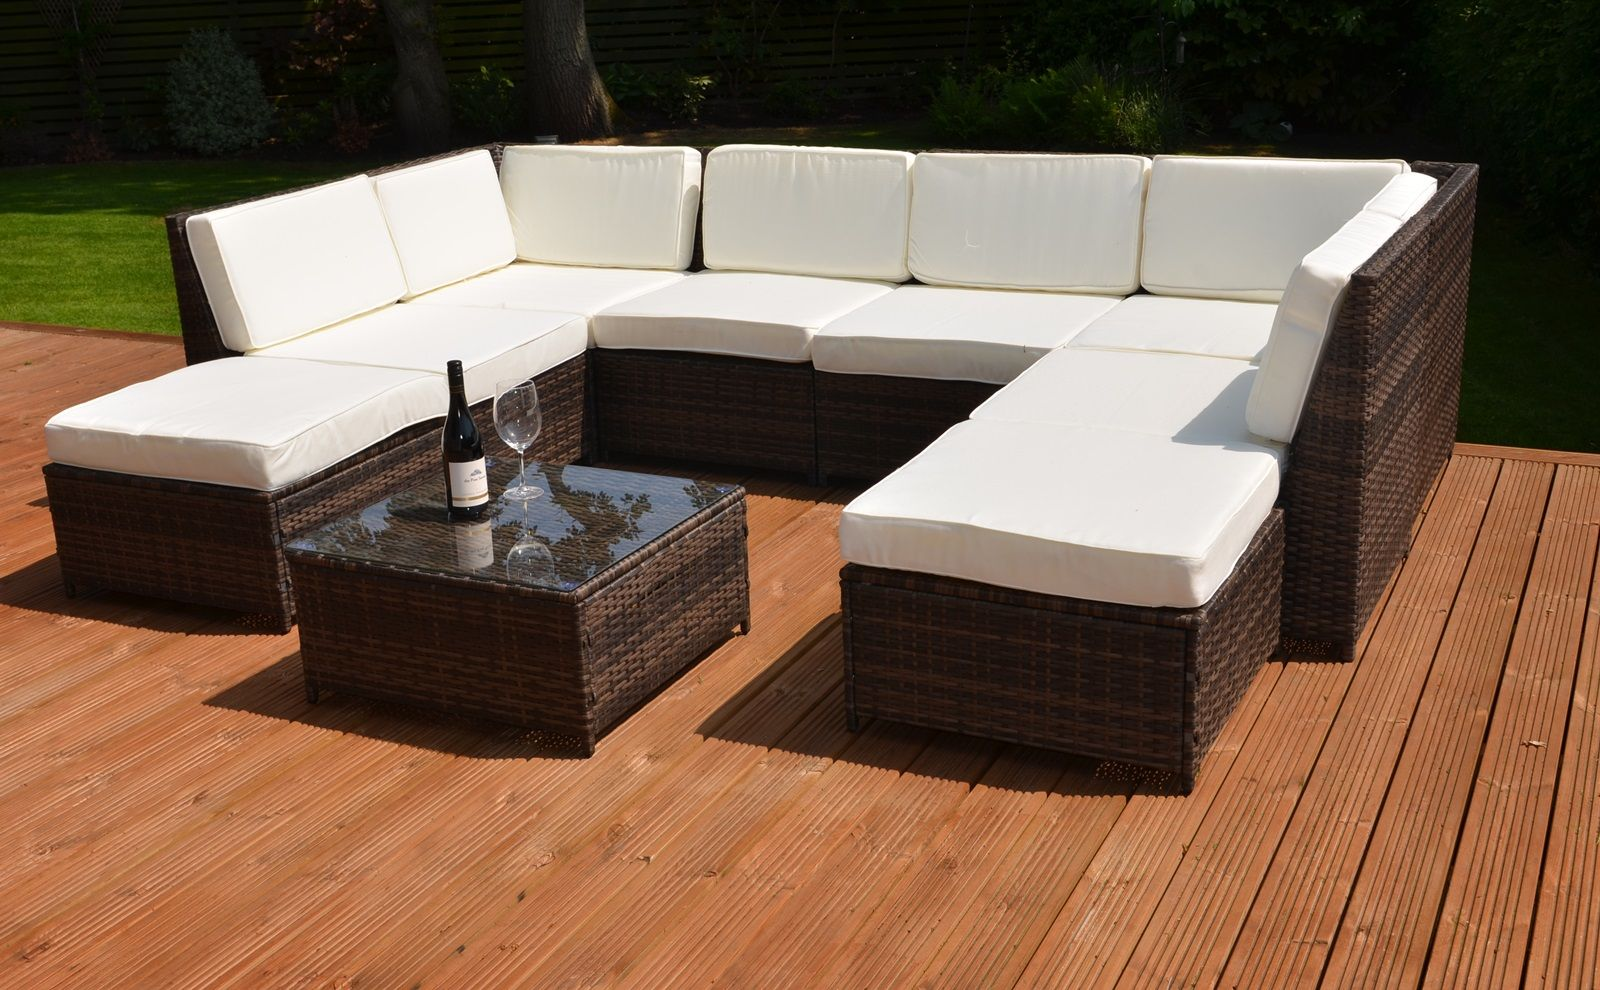 How to clean artificial rattan garden furniture